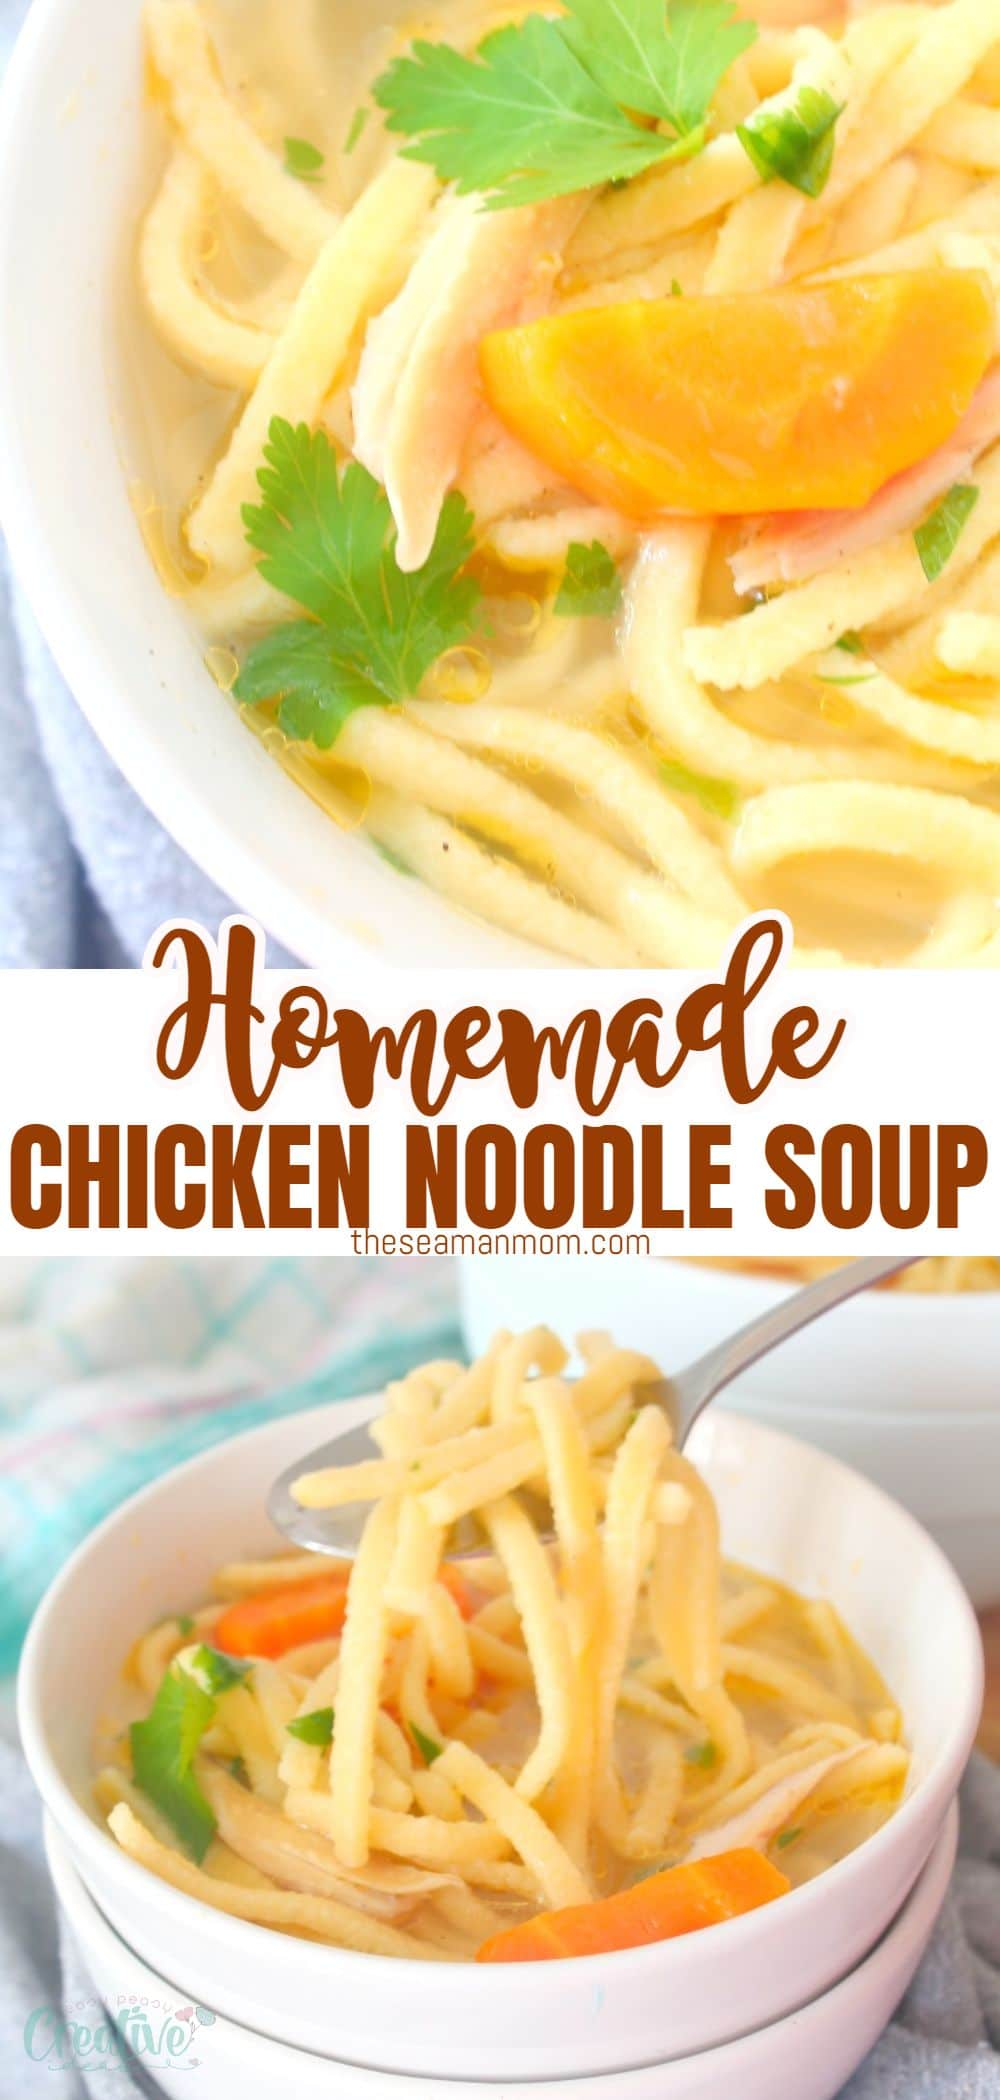 Nothing heals a cold quicker than a nice bowl of hot chicken noodle soup! The classic comfort food for cool days or when you're feeling sick! via @petroneagu